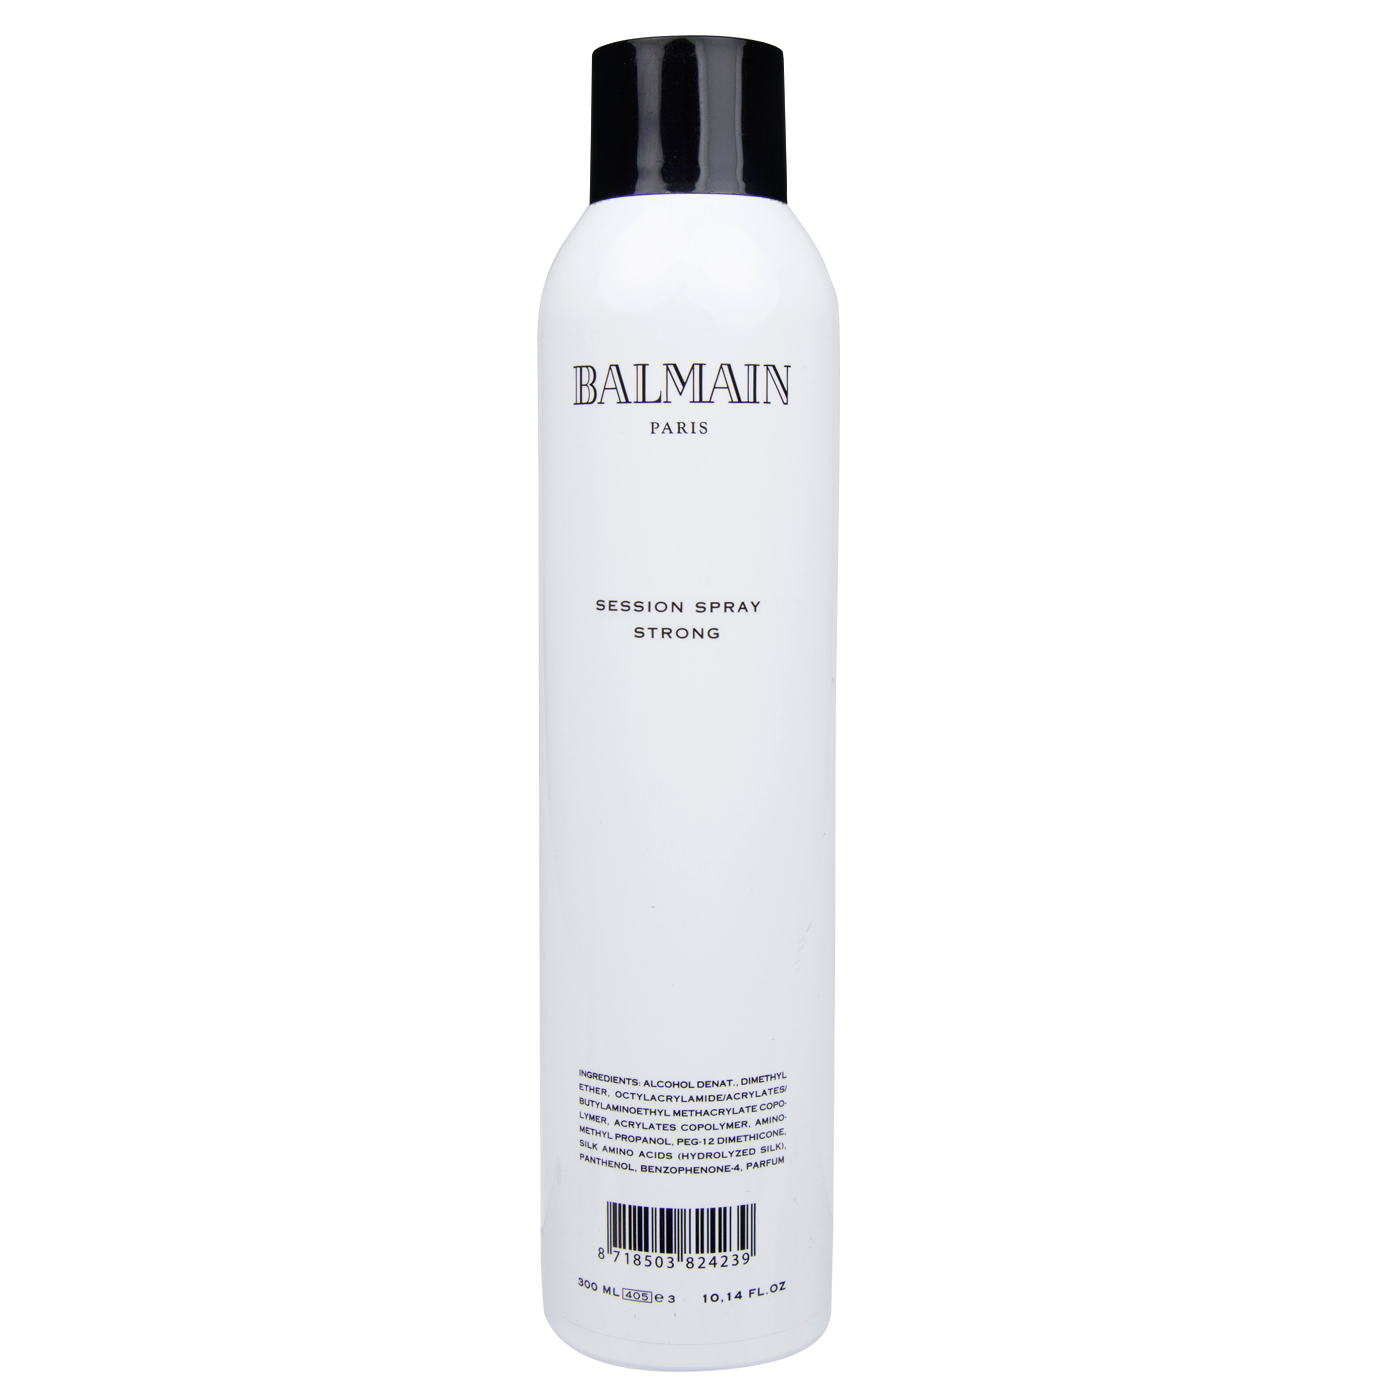 Balmain Session Spray Strong 300 ml | Fijación Fuerte